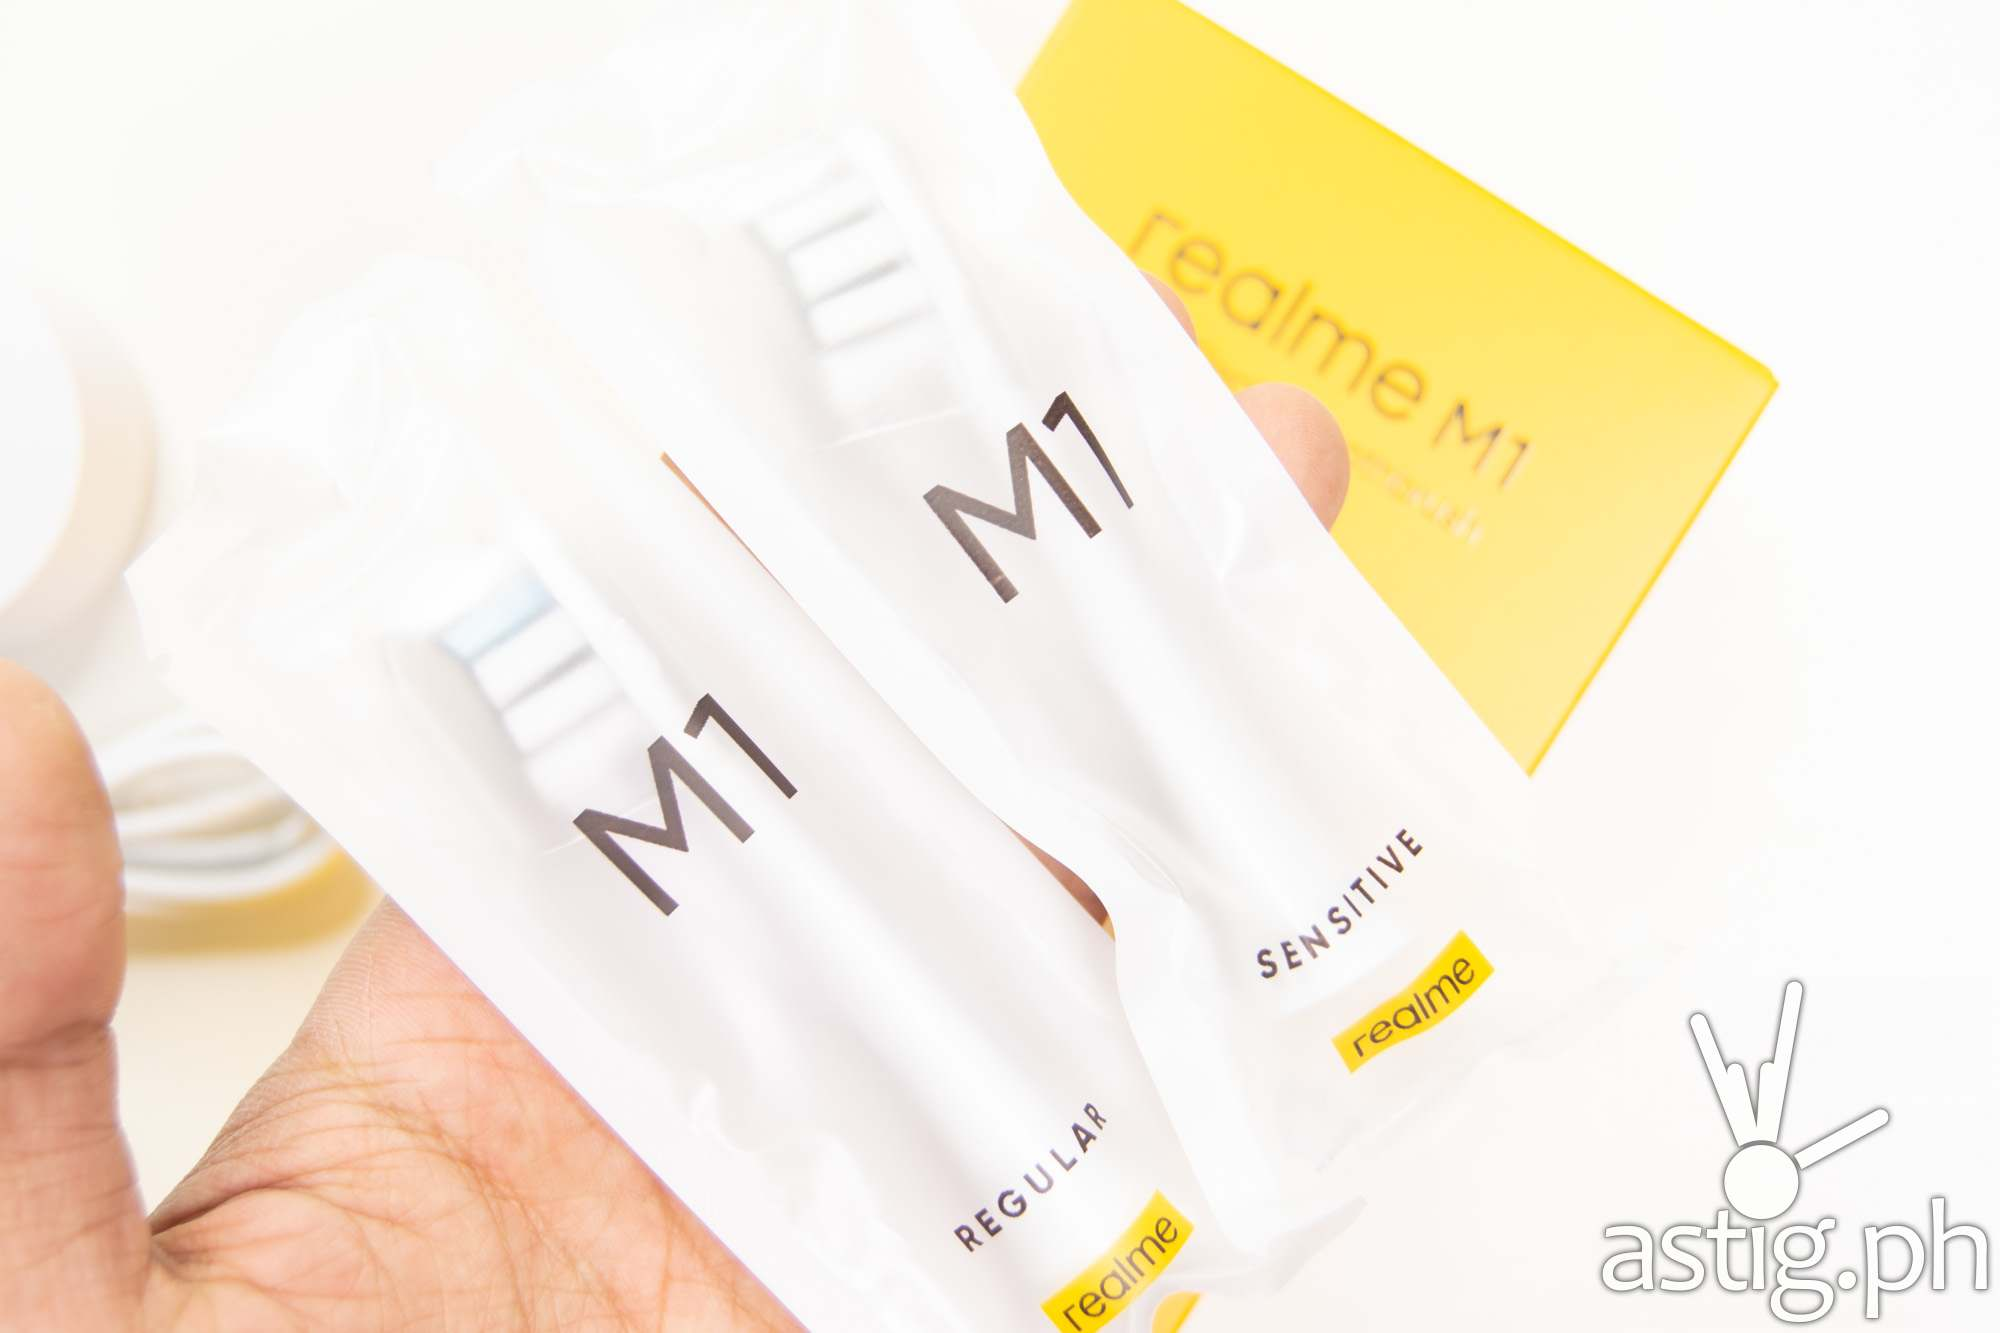 Toothbrush heads packed - realme M1 Sonic Electric Toothbrush (Philippines)